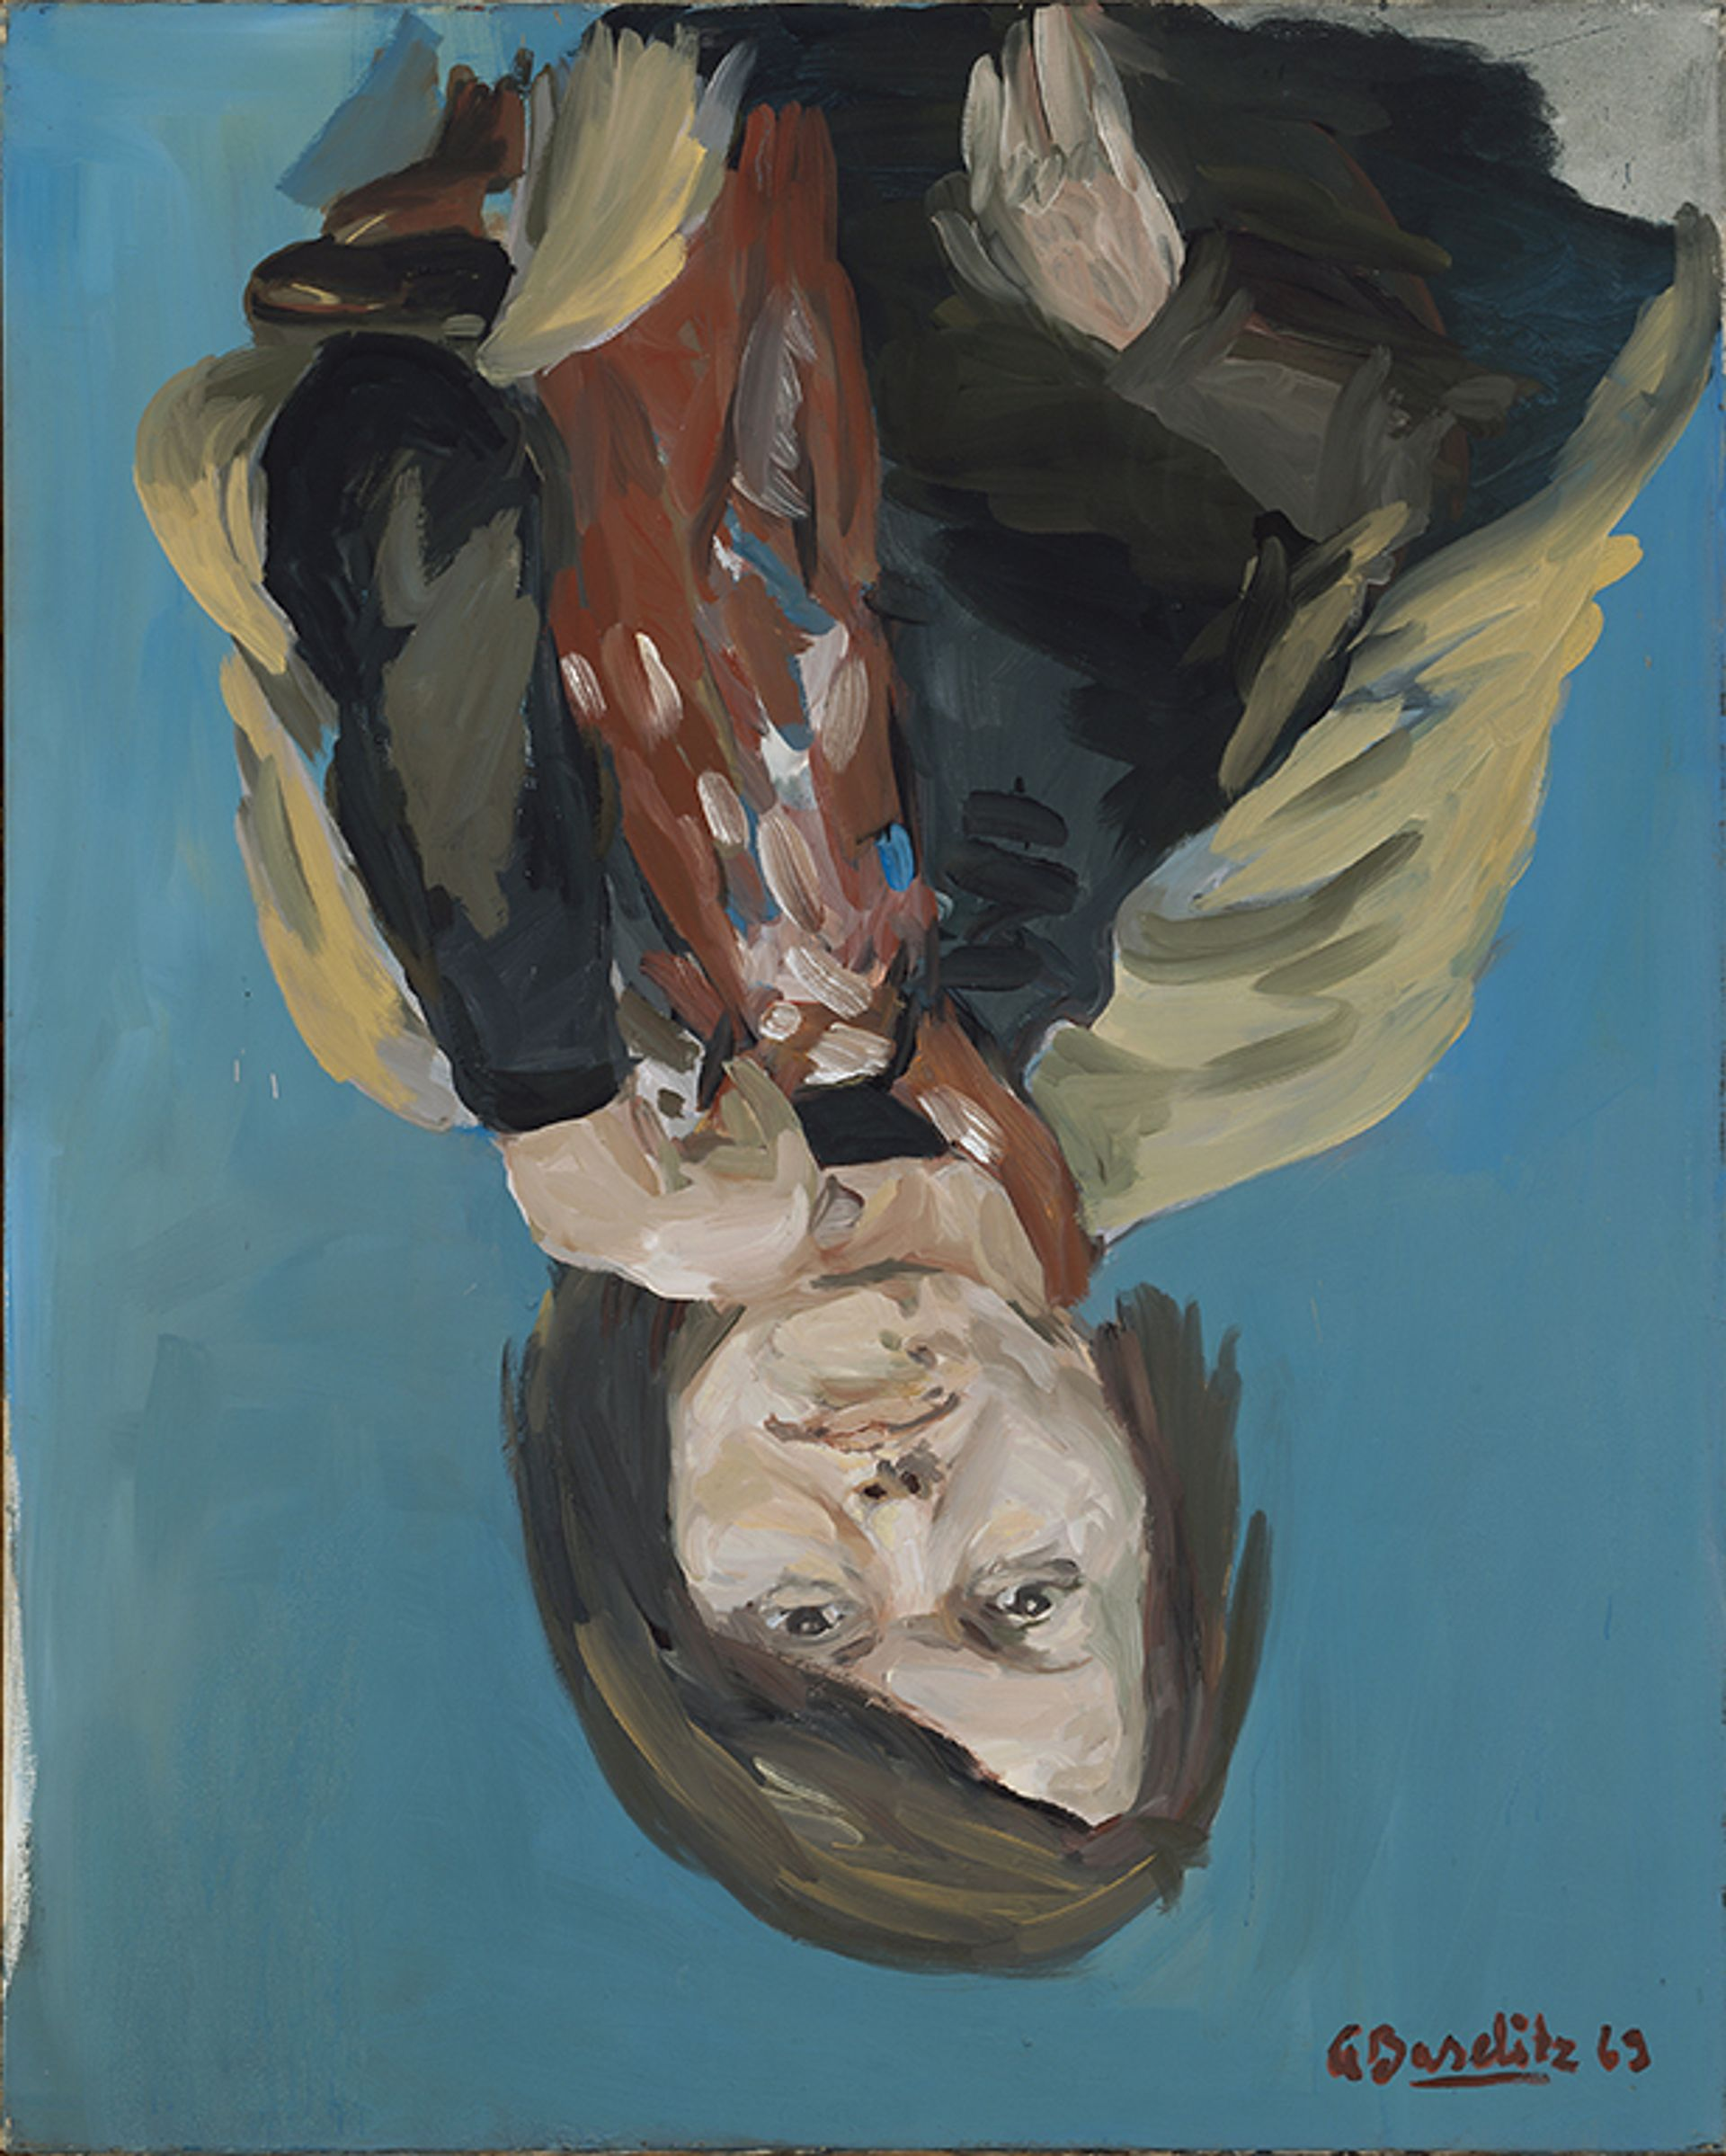 Georg Baselitz's Portrait of Elke I, one of six 1969 paintings donated by the artist and his wife to the Metropolitan Museum of Art The Metropolitan Museum of Art, Gift of the Baselitz Family, 2020, © Georg Baselitz 2021